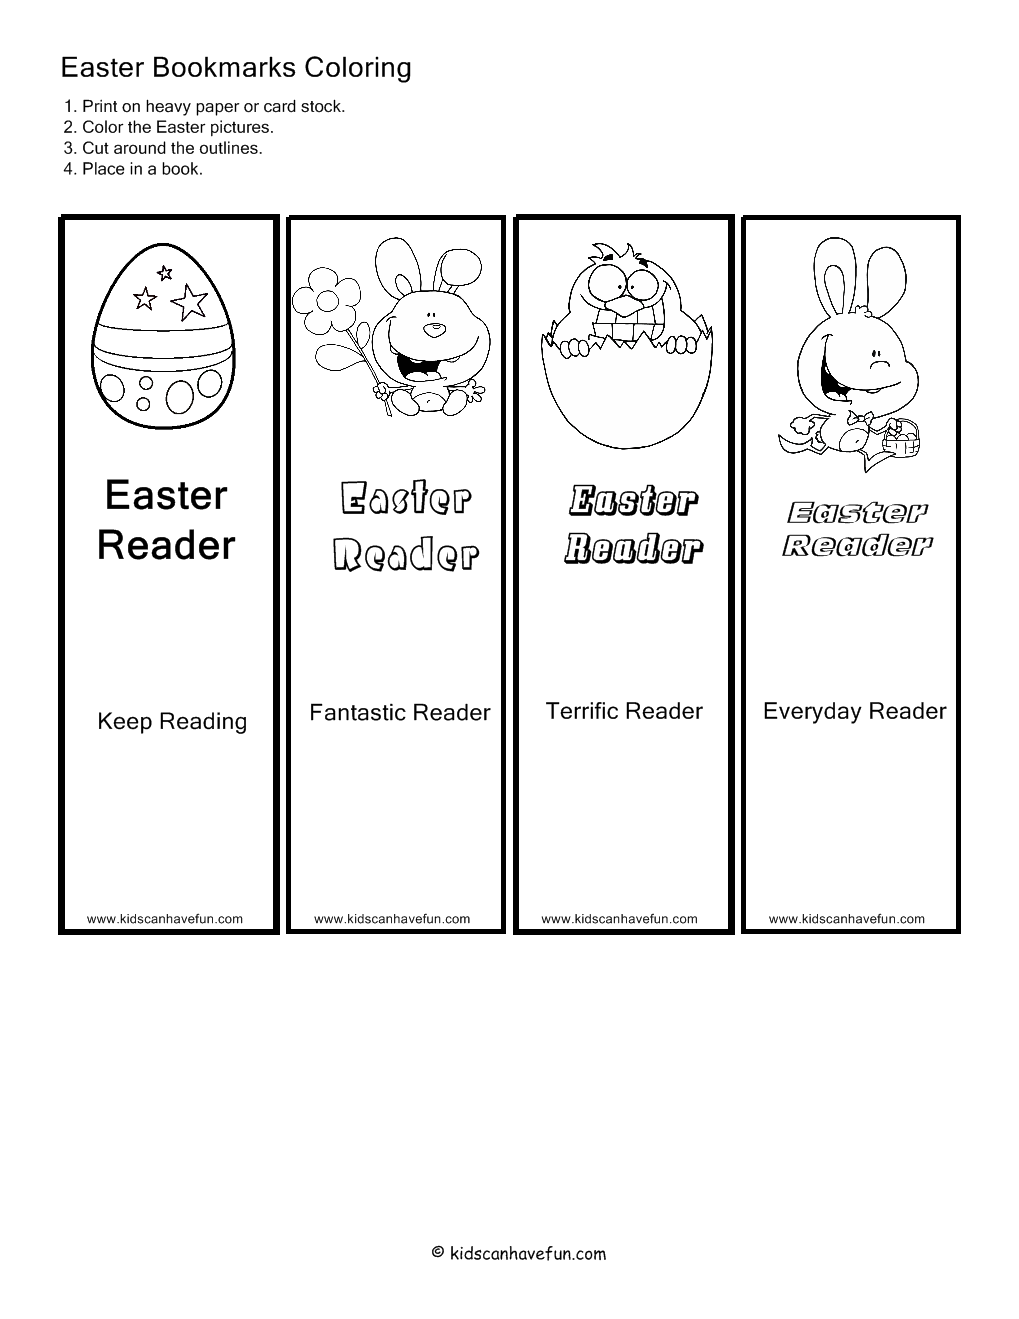 Bookmark Printable Images Gallery Category Page 7 Christmas Coloring Sheets Coloring Bookmarks Easter Printables Free